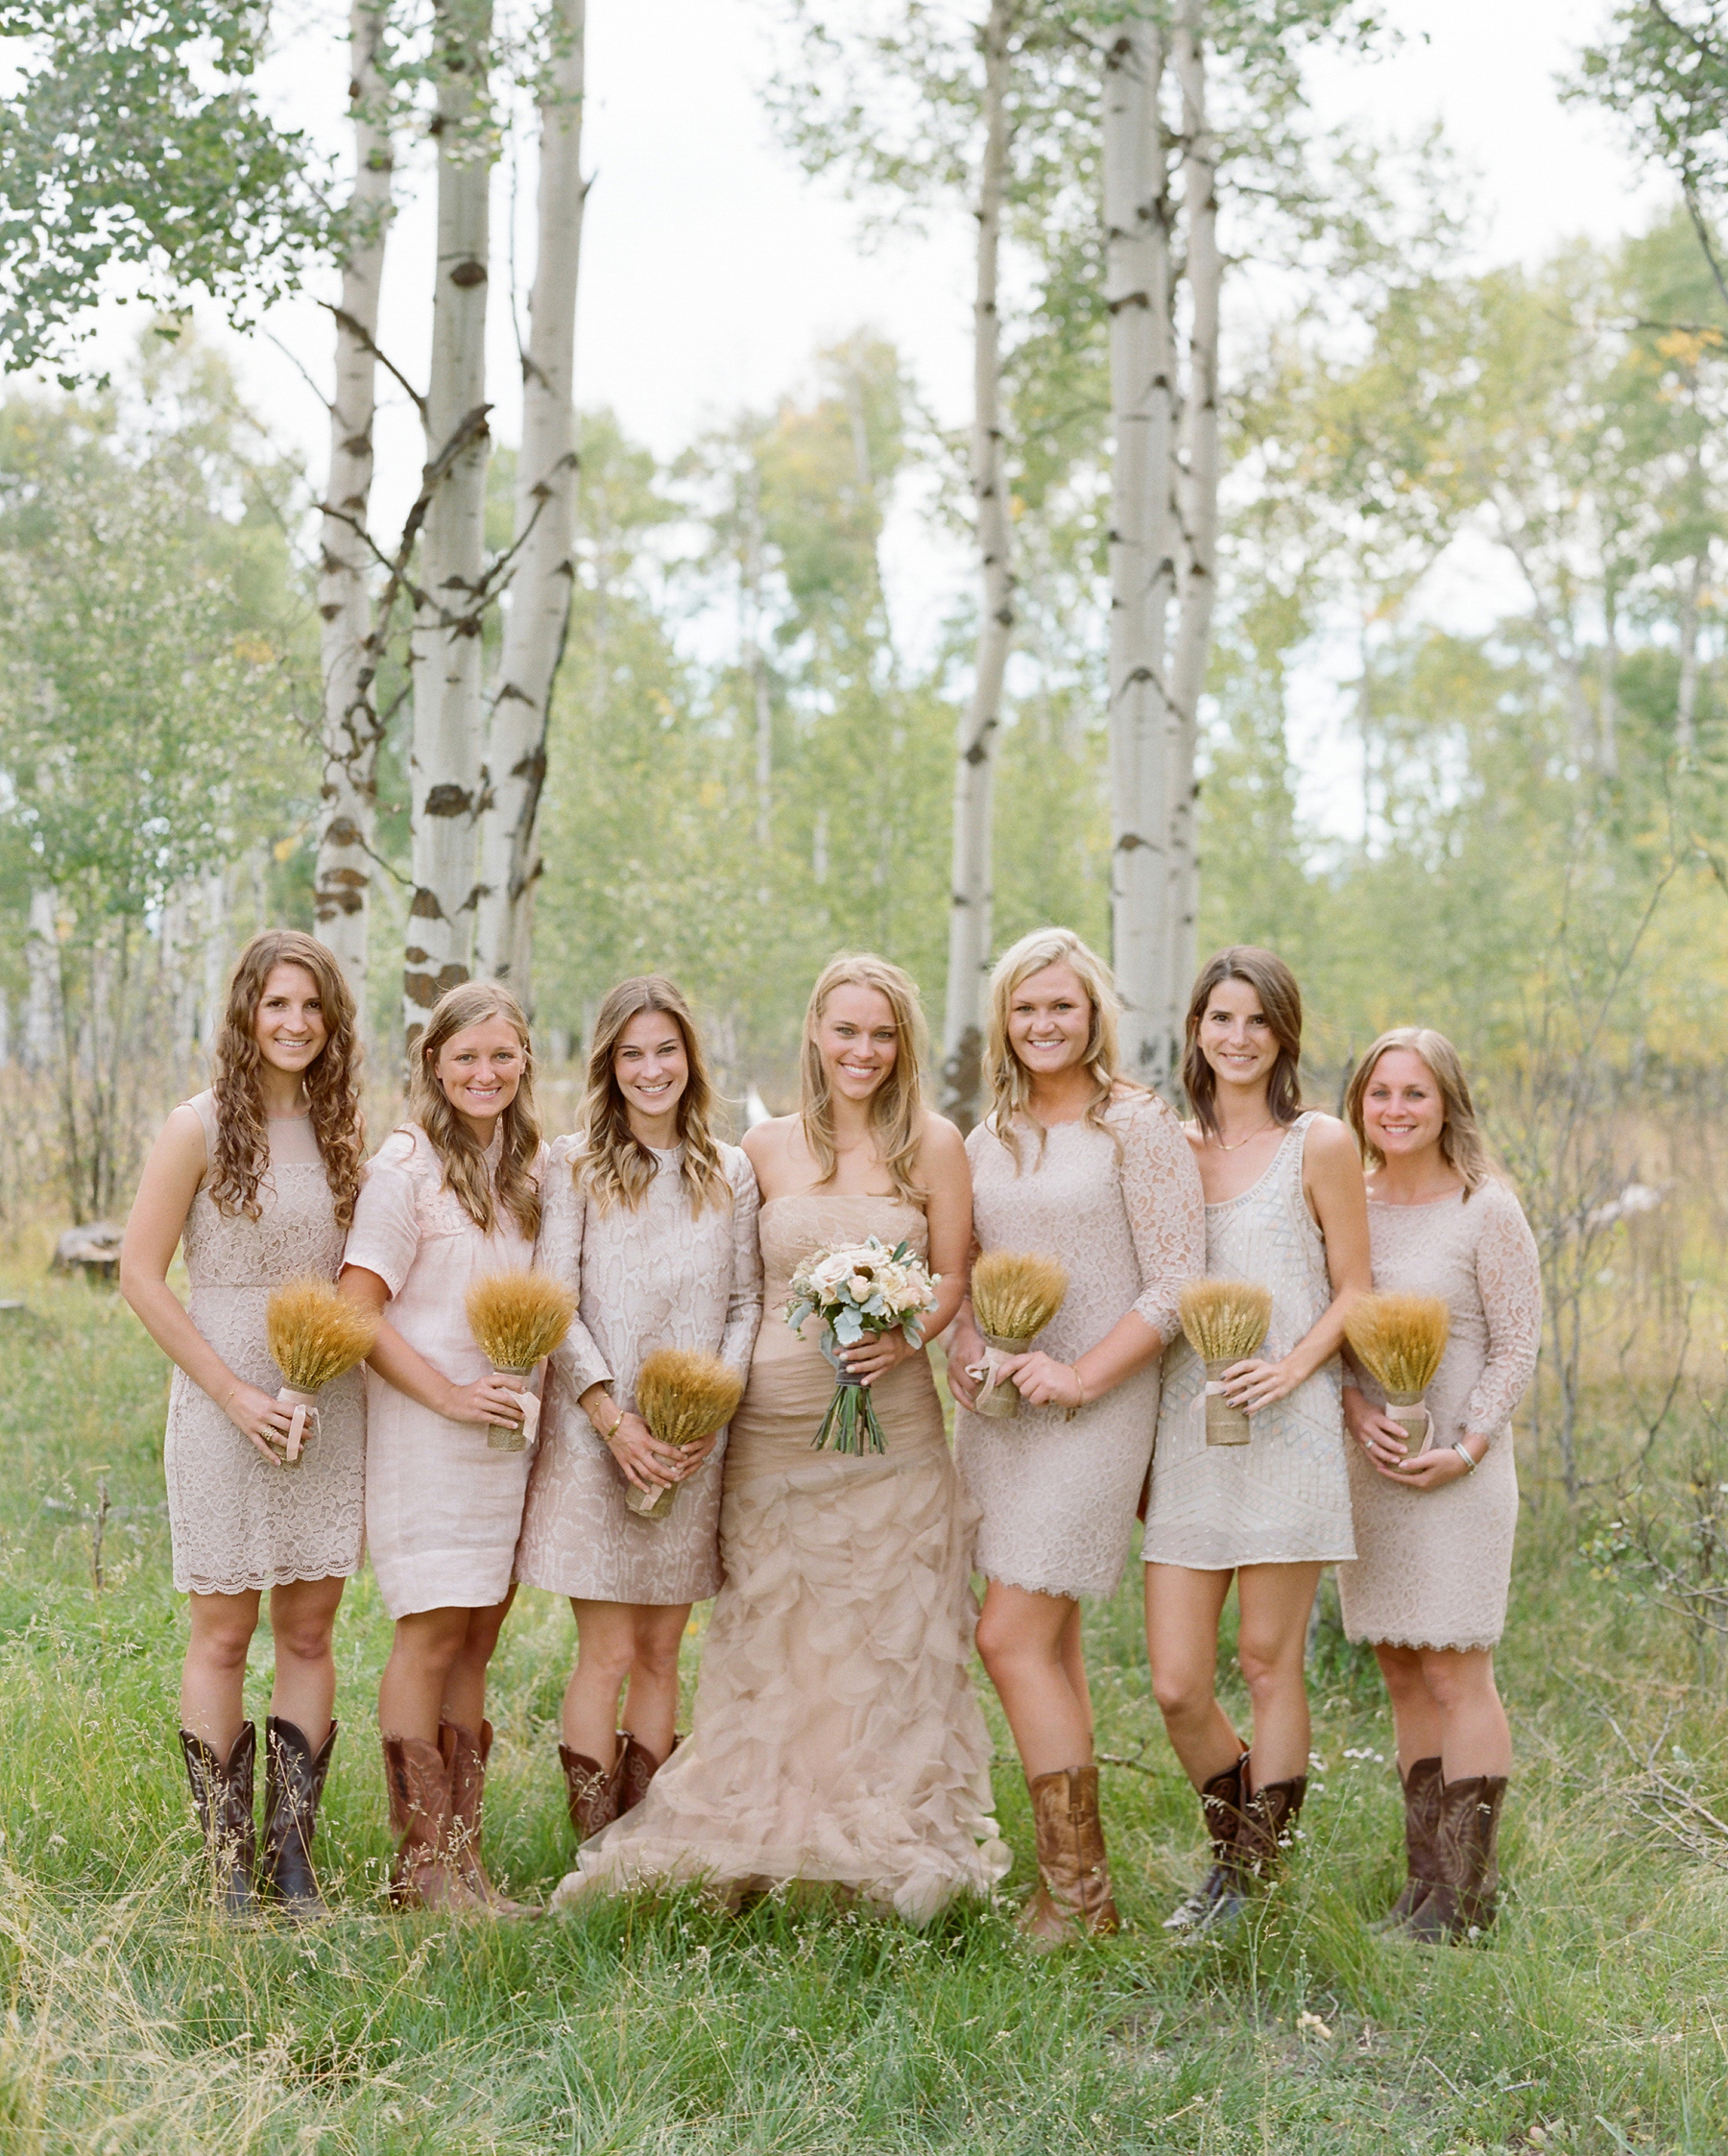 callie-eric-wedding-bridesmaids-203-s112113-0815.jpg